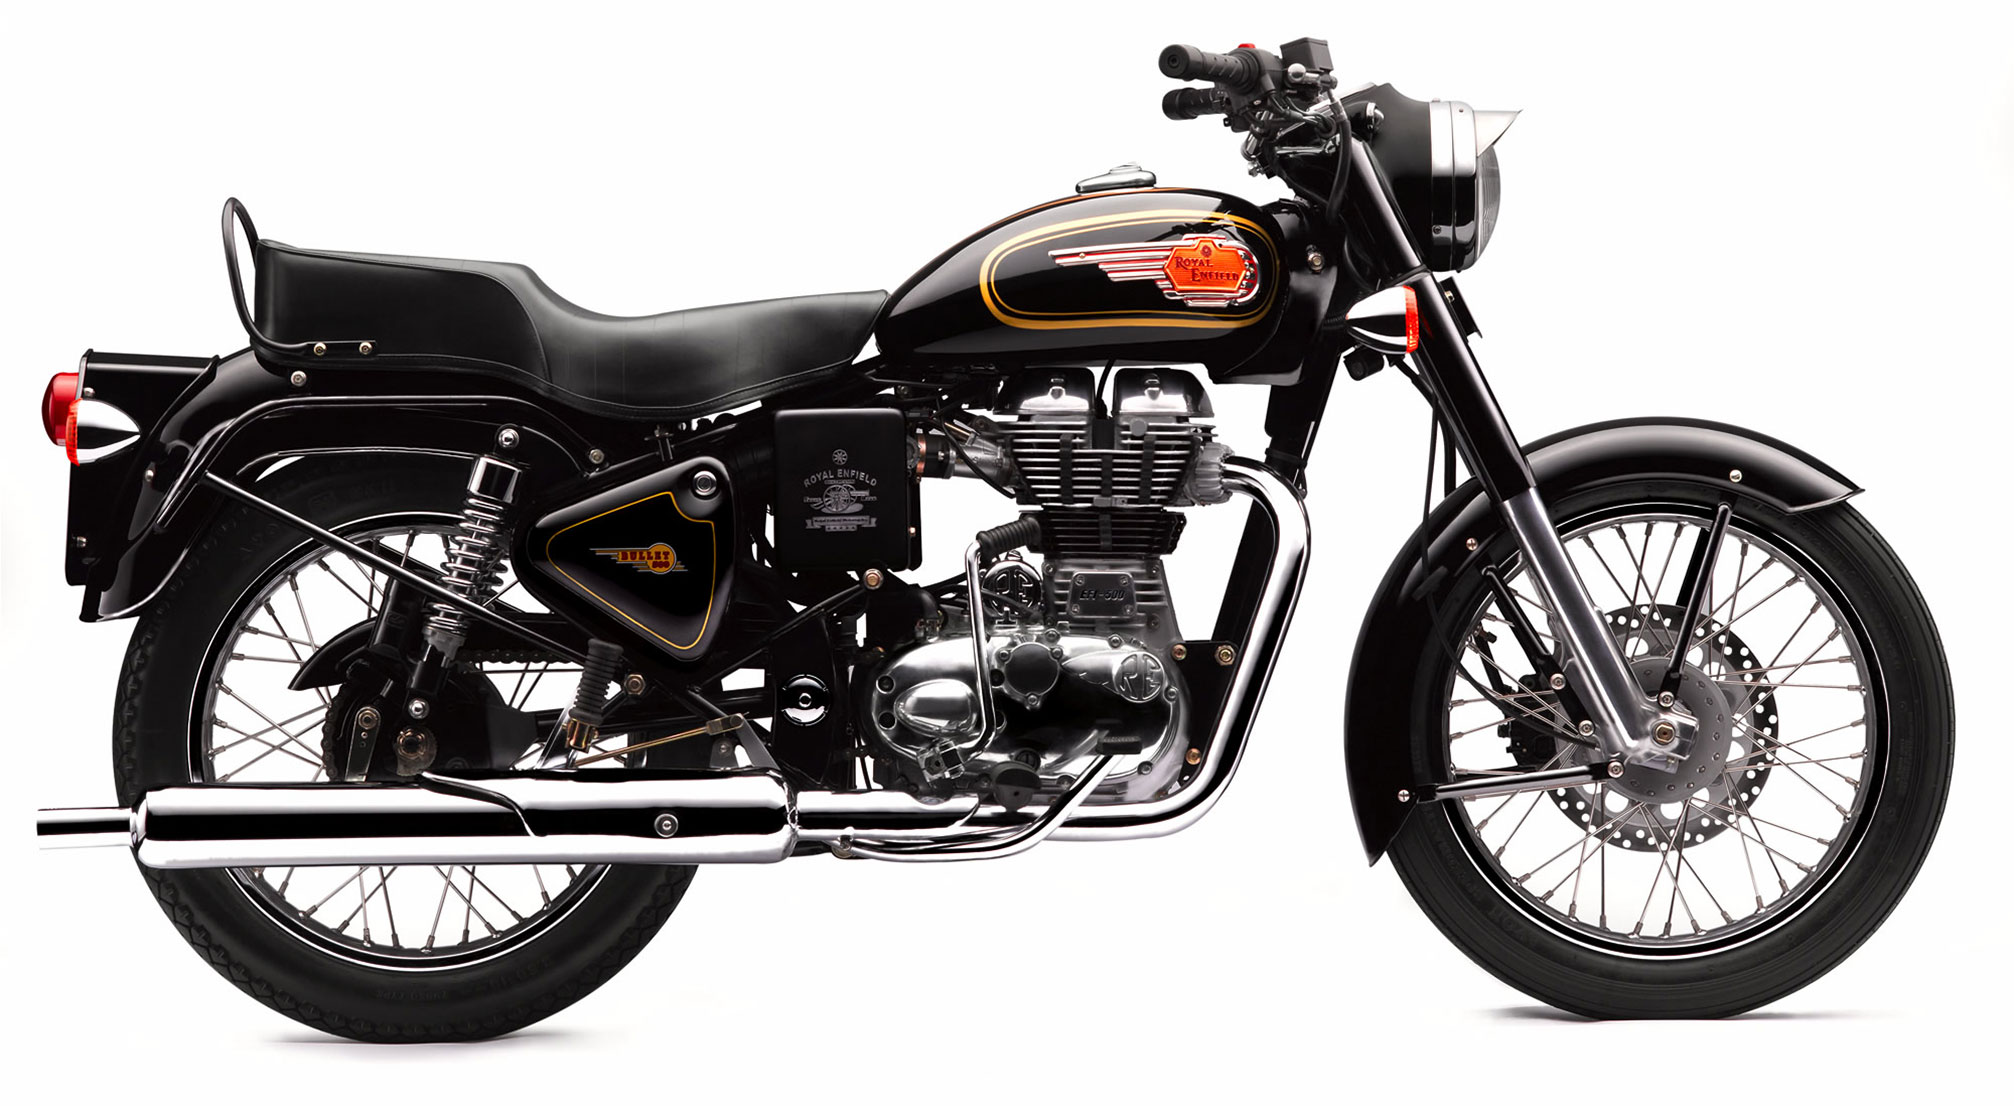 Royal enfield bullet pictures - 2014 Royal Enfield Bullet 500 B5